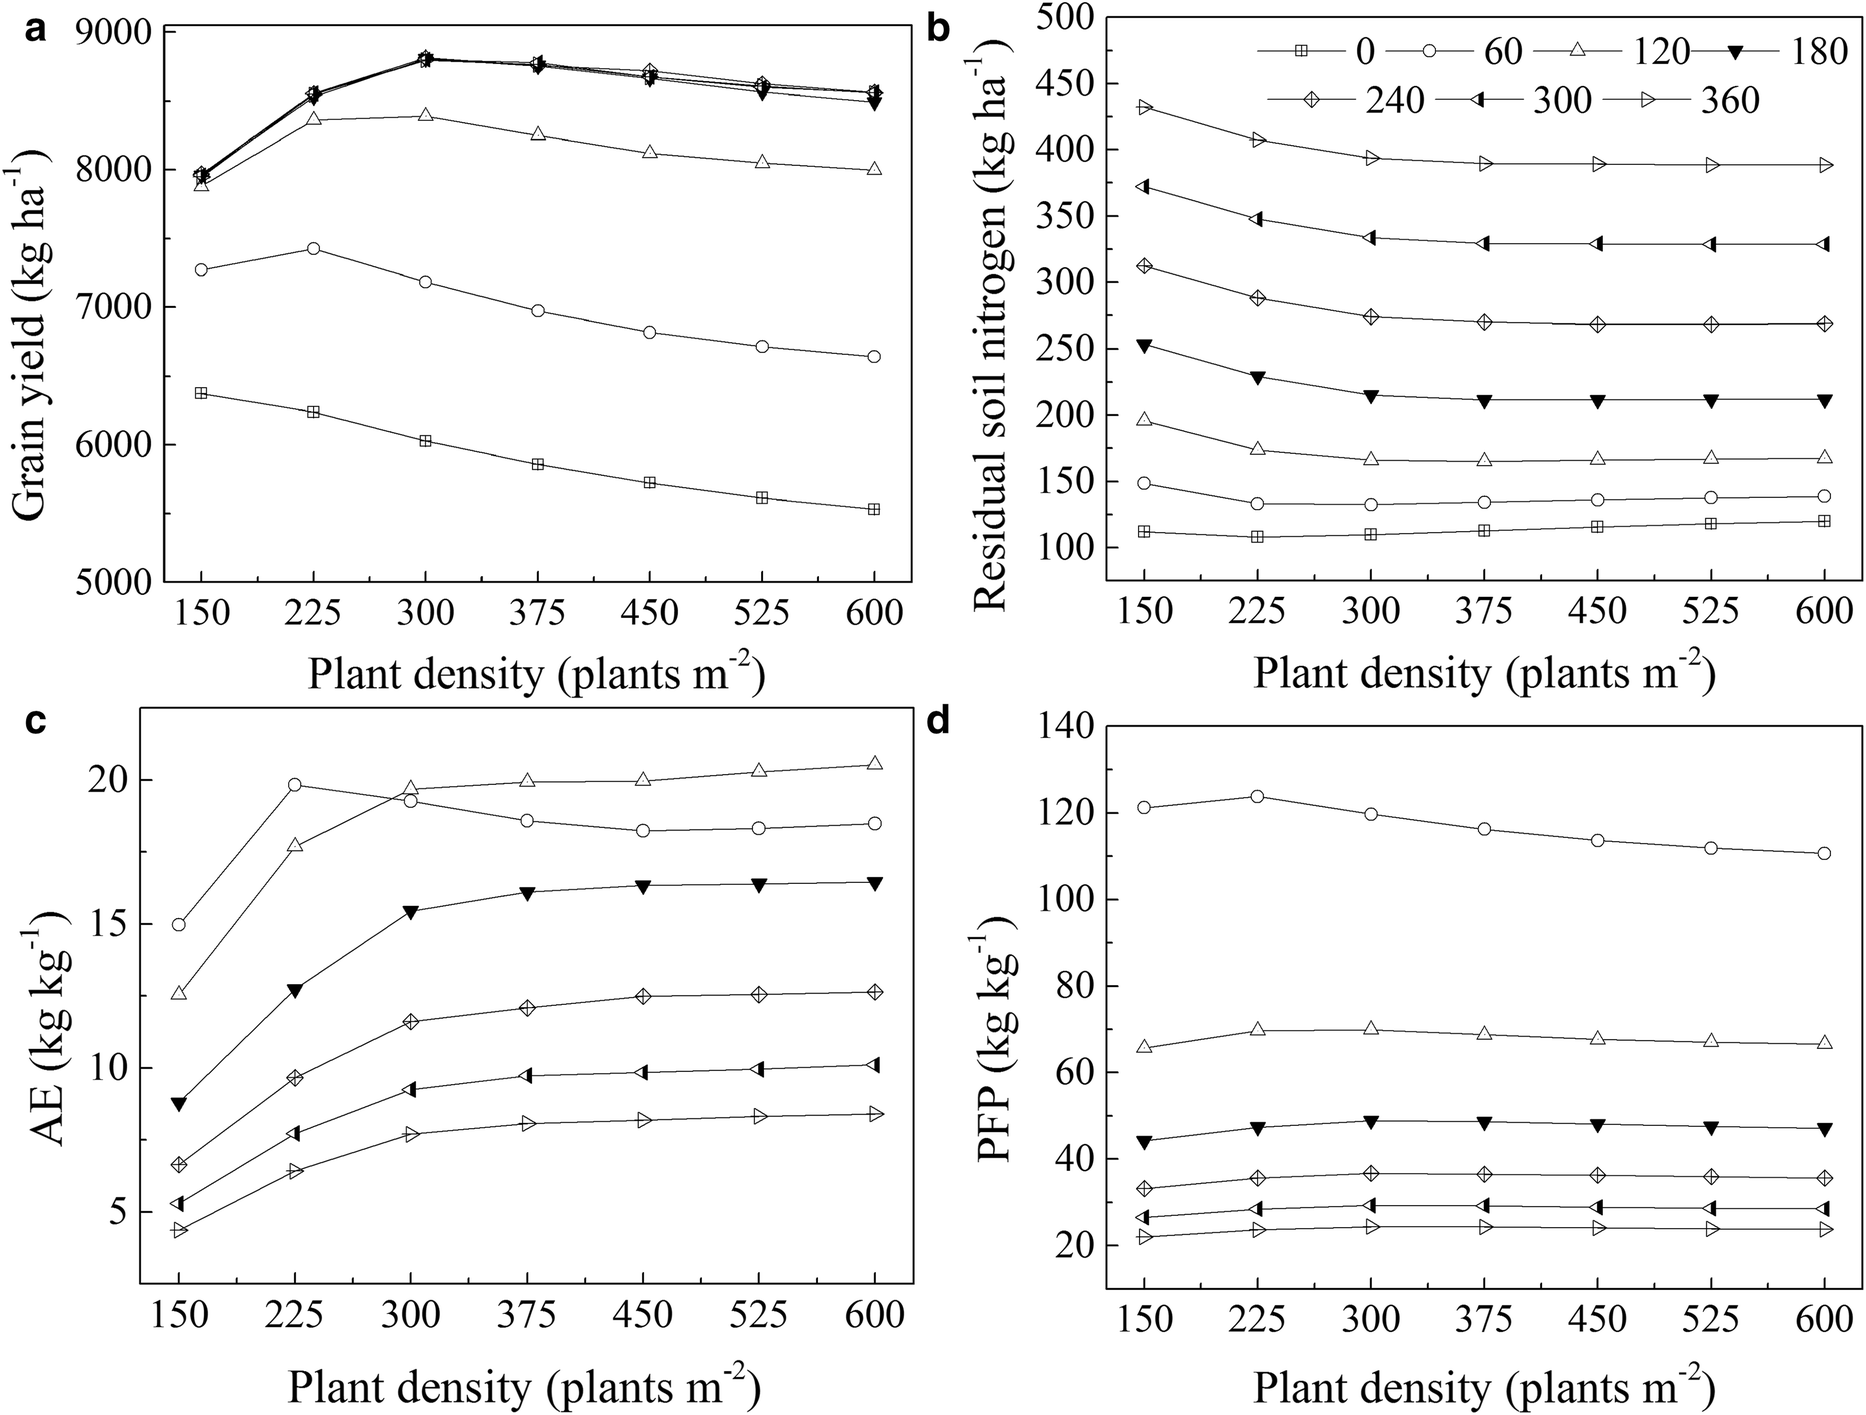 DSSAT-CERES-Wheat model to optimize plant density and